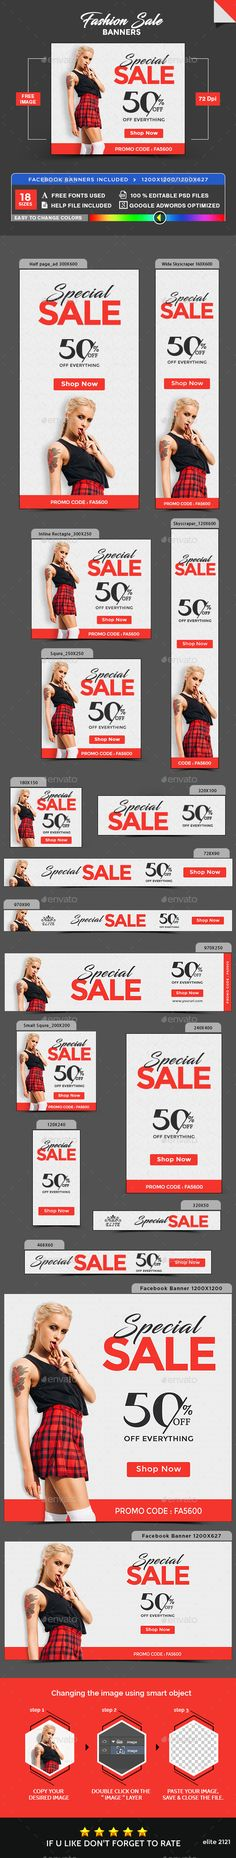 Fashion Banners #adroll #coupon Download : https://graphicriver.net/item/fashion-banners/19380170?ref=pxcr